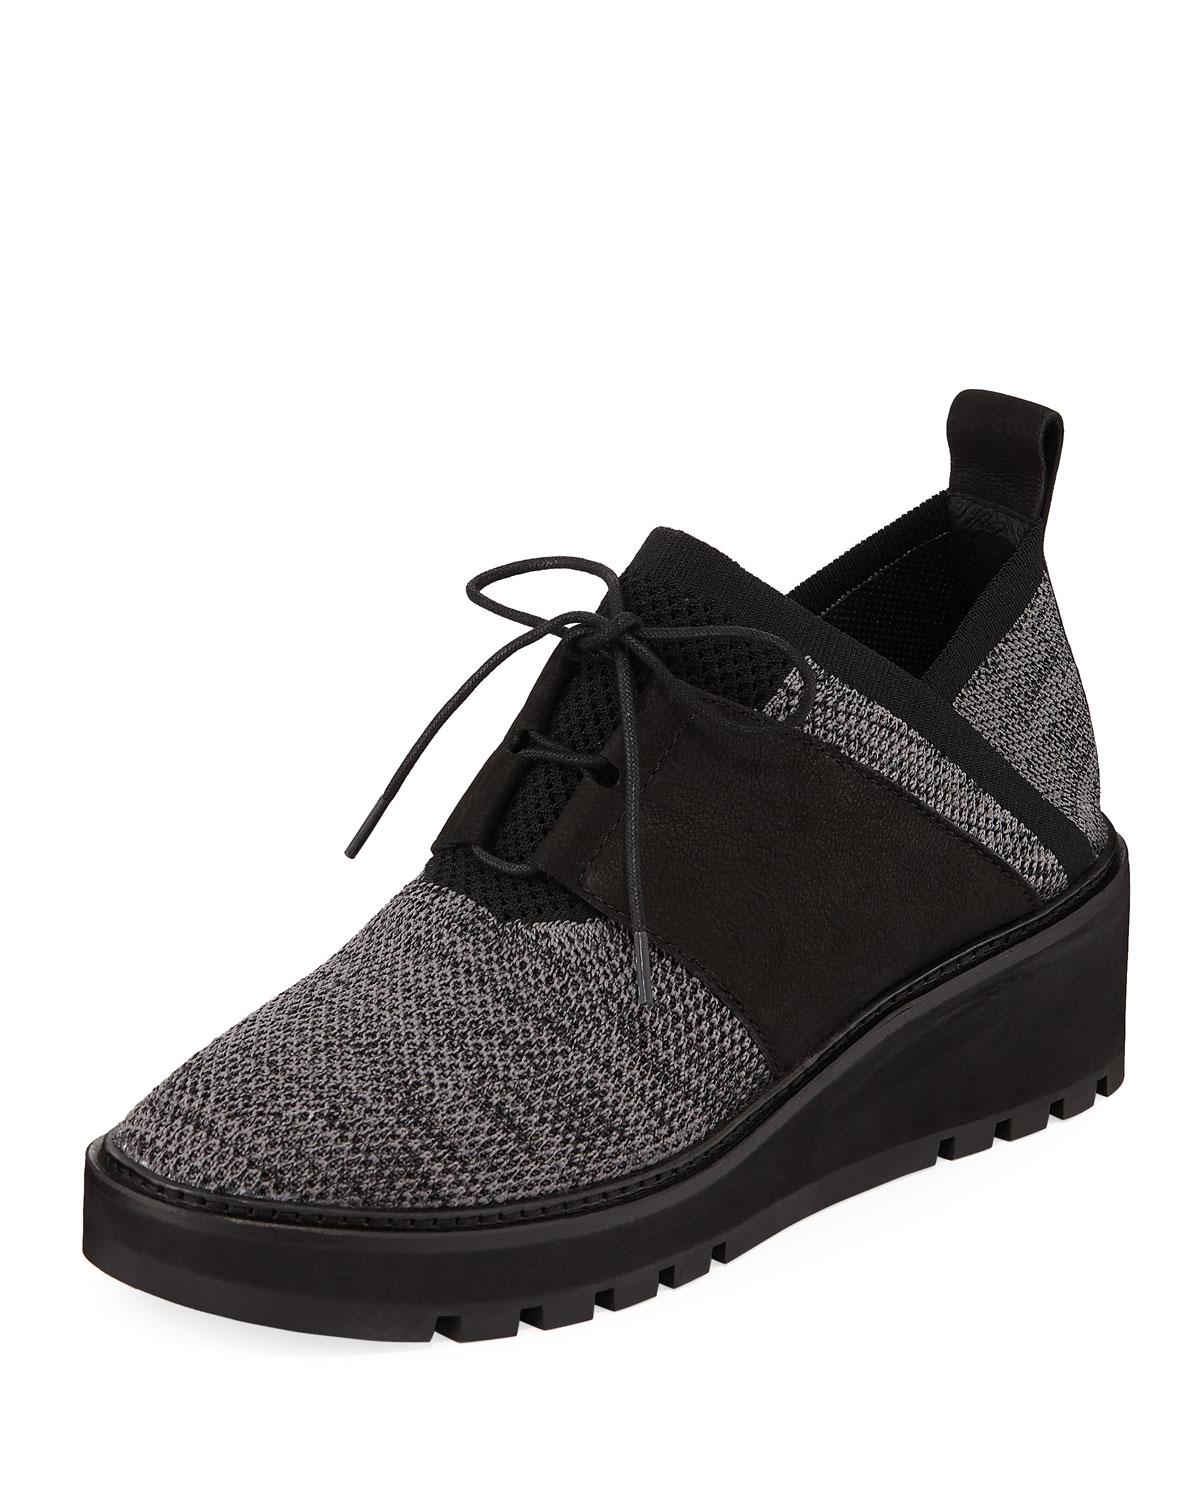 b337f4d2ad43 Lyst - Eileen Fisher Wilson Lace-up Knit Wedge Walking Shoes in ...